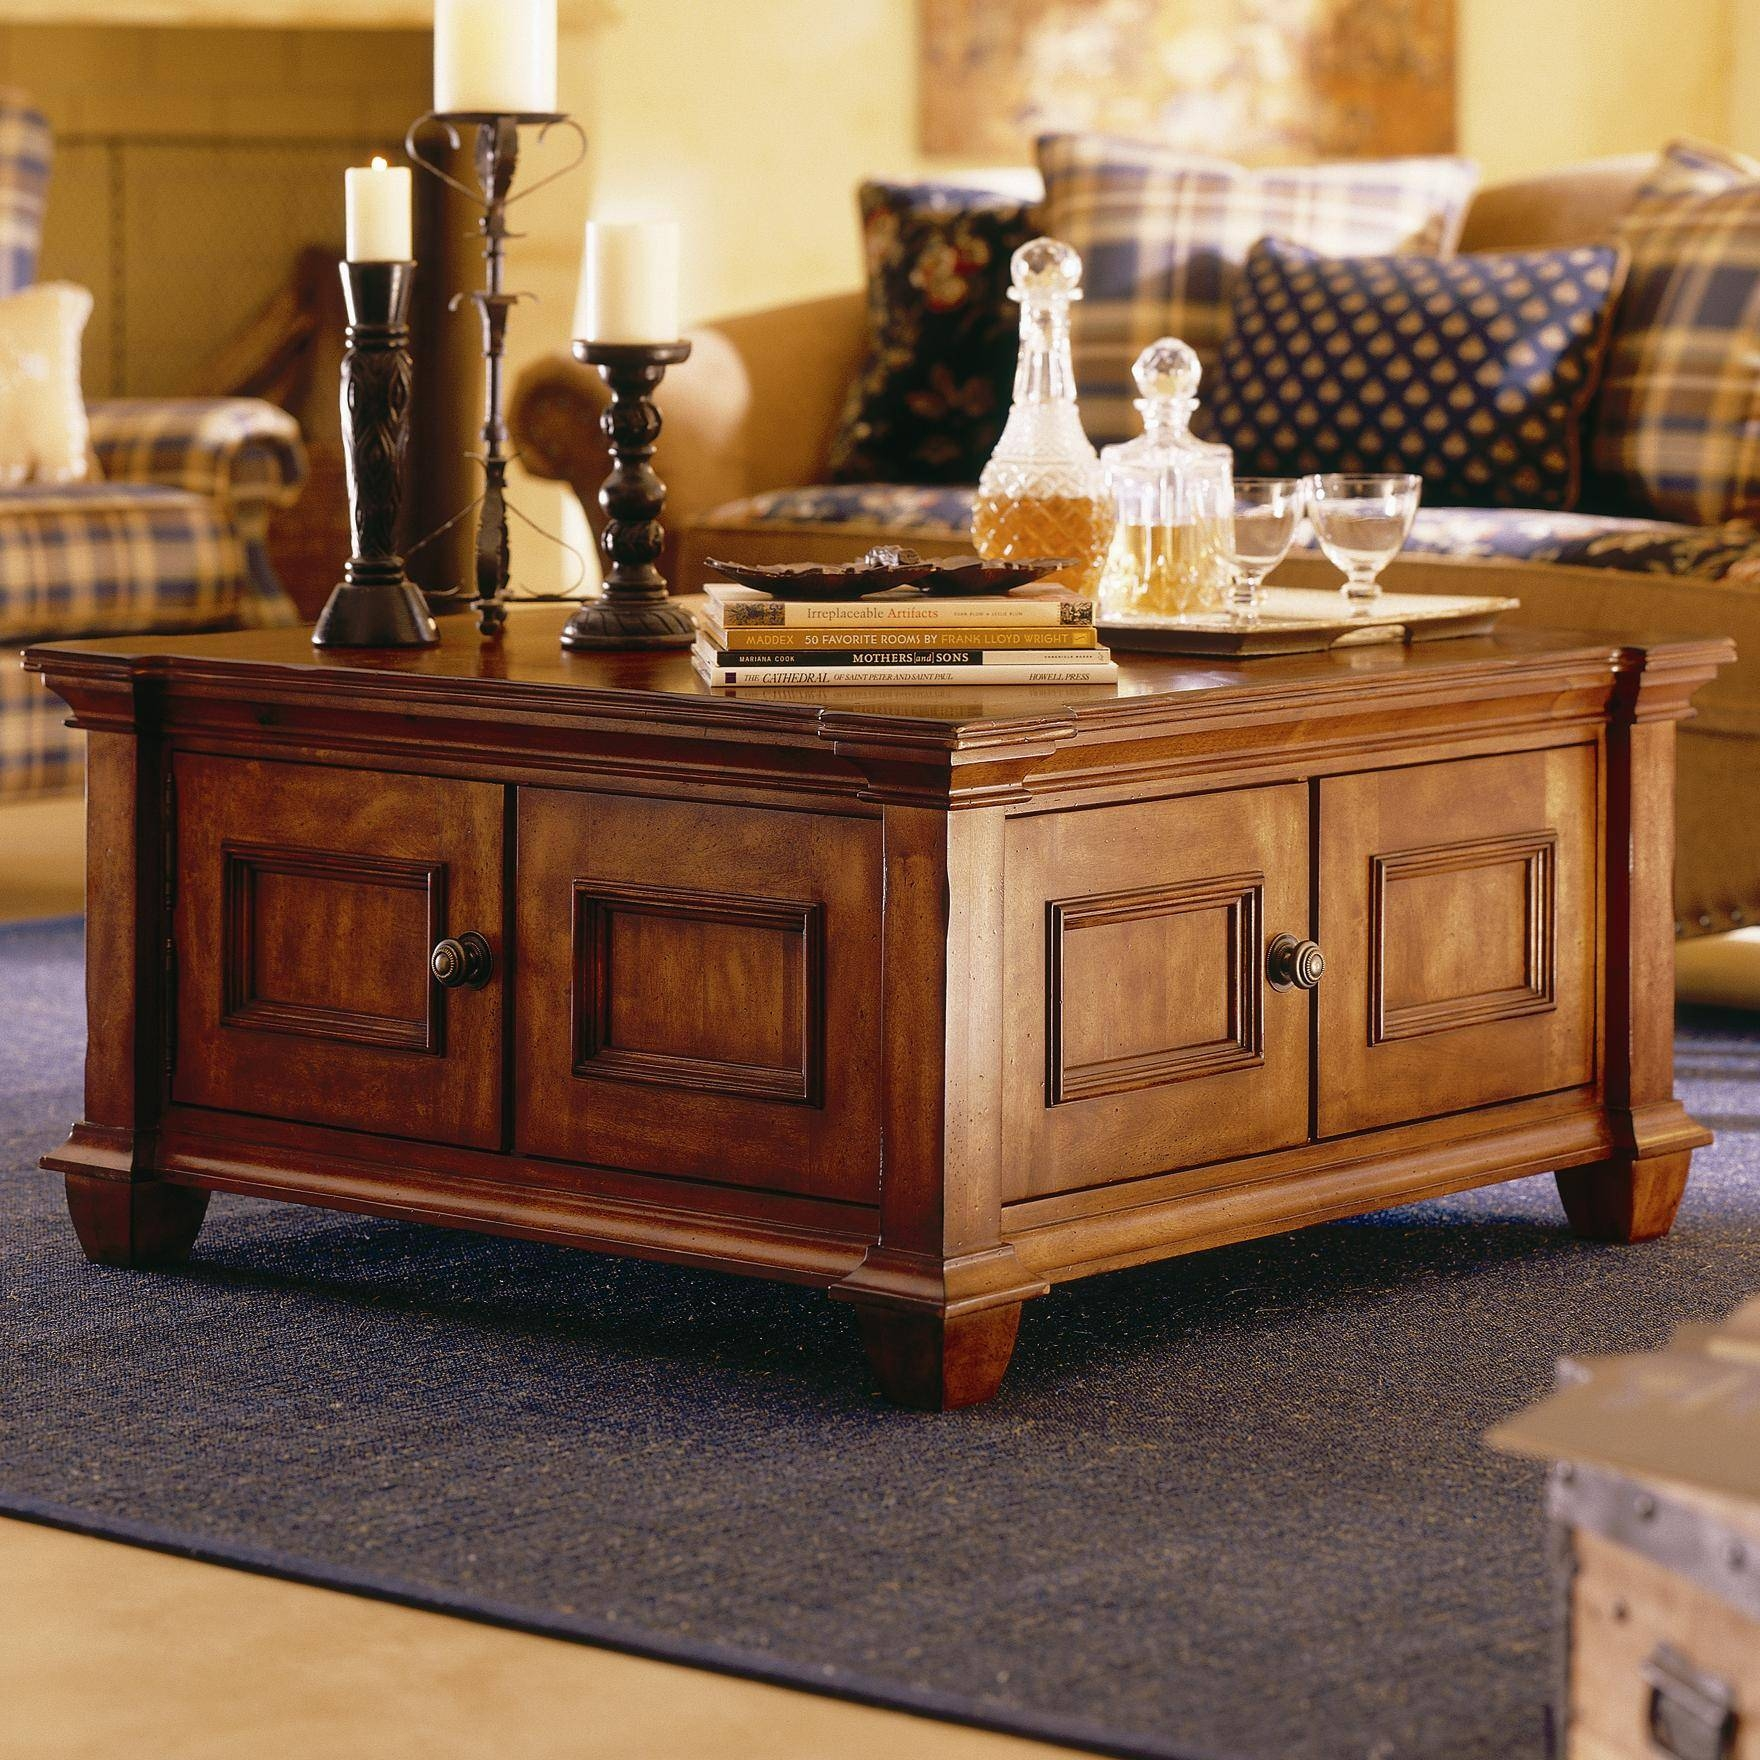 Large Square Coffee Table With Storage in Large Coffee Table With Storage (Image 9 of 12)